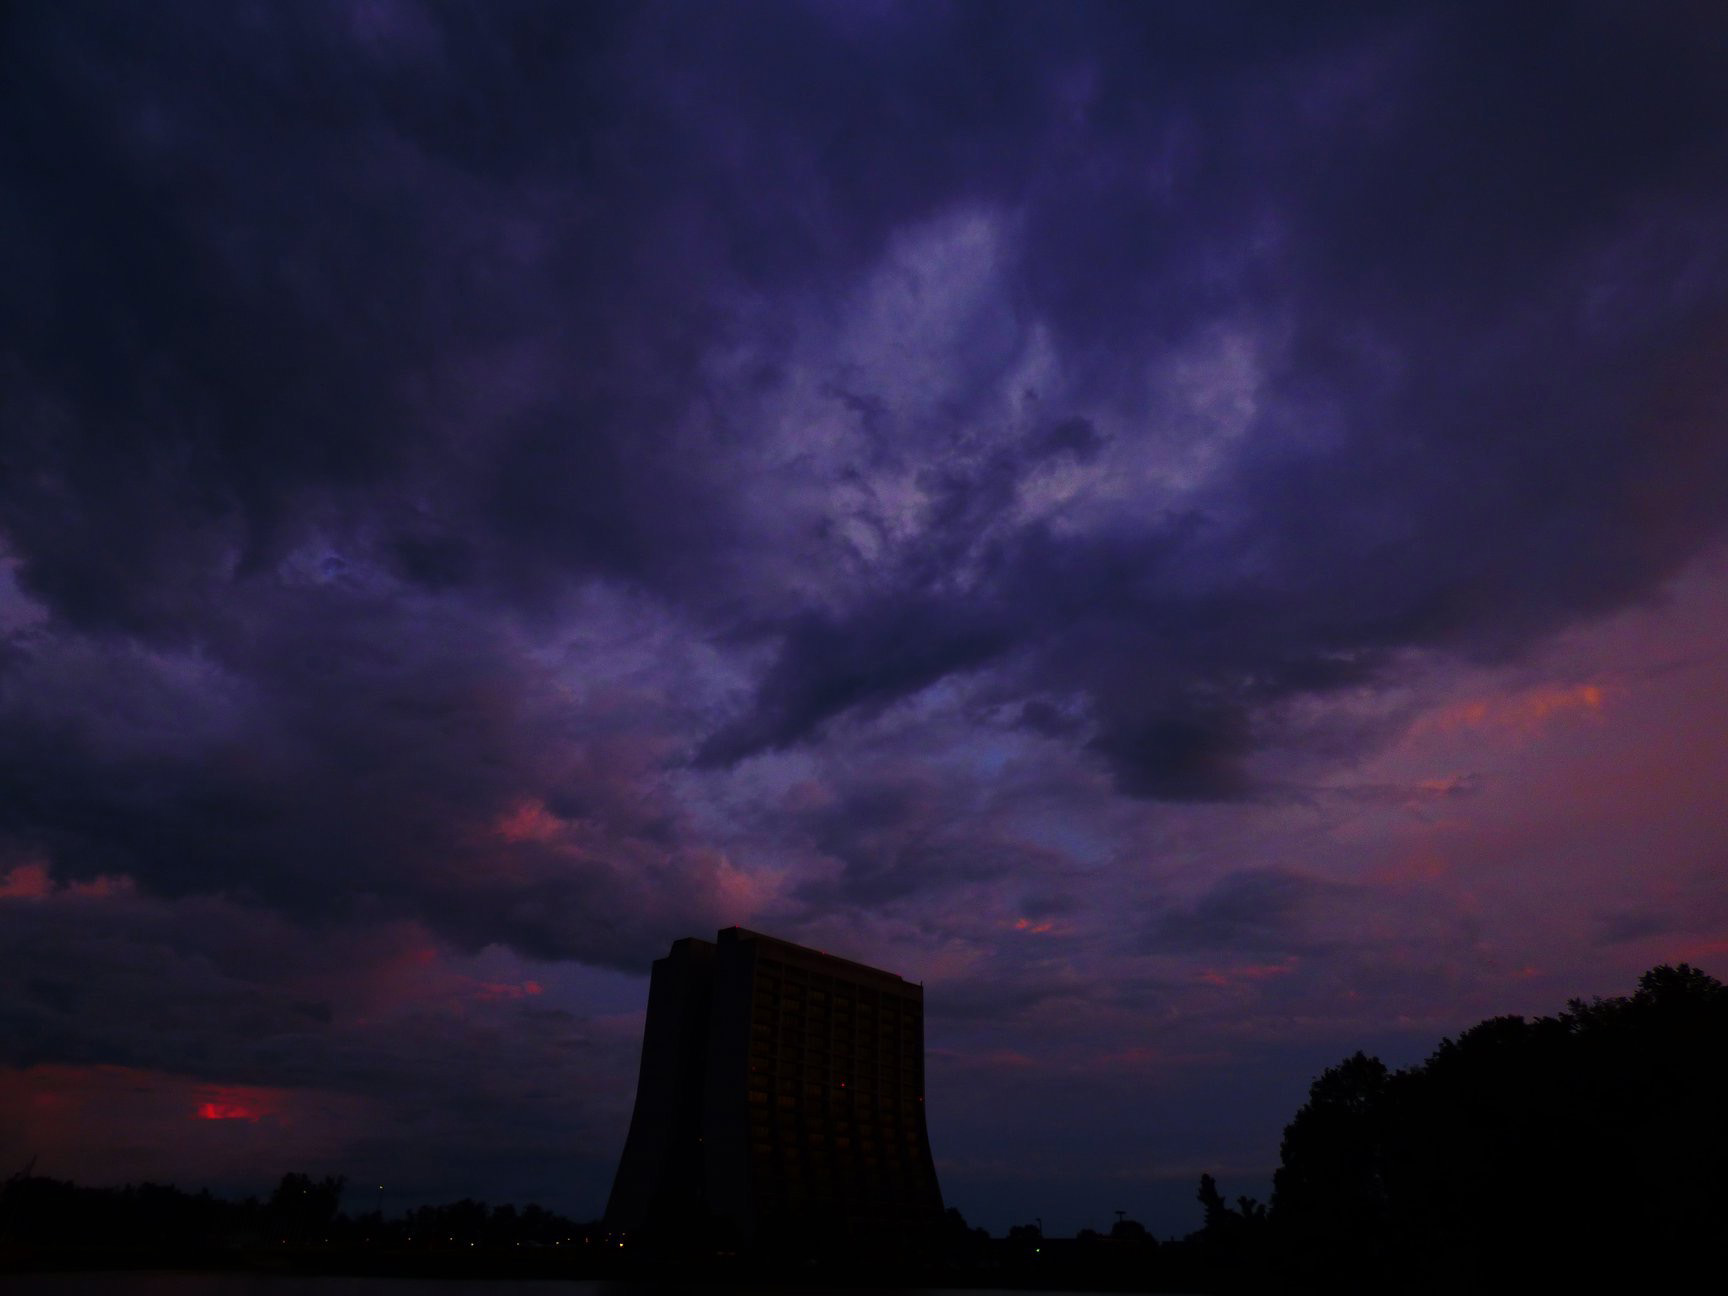 (1/2) Dramatic violet skies bear down on Wilson Hall. nature, landscape, cloud, sky, Wilson Hall, night Photo: Amy Scroggins